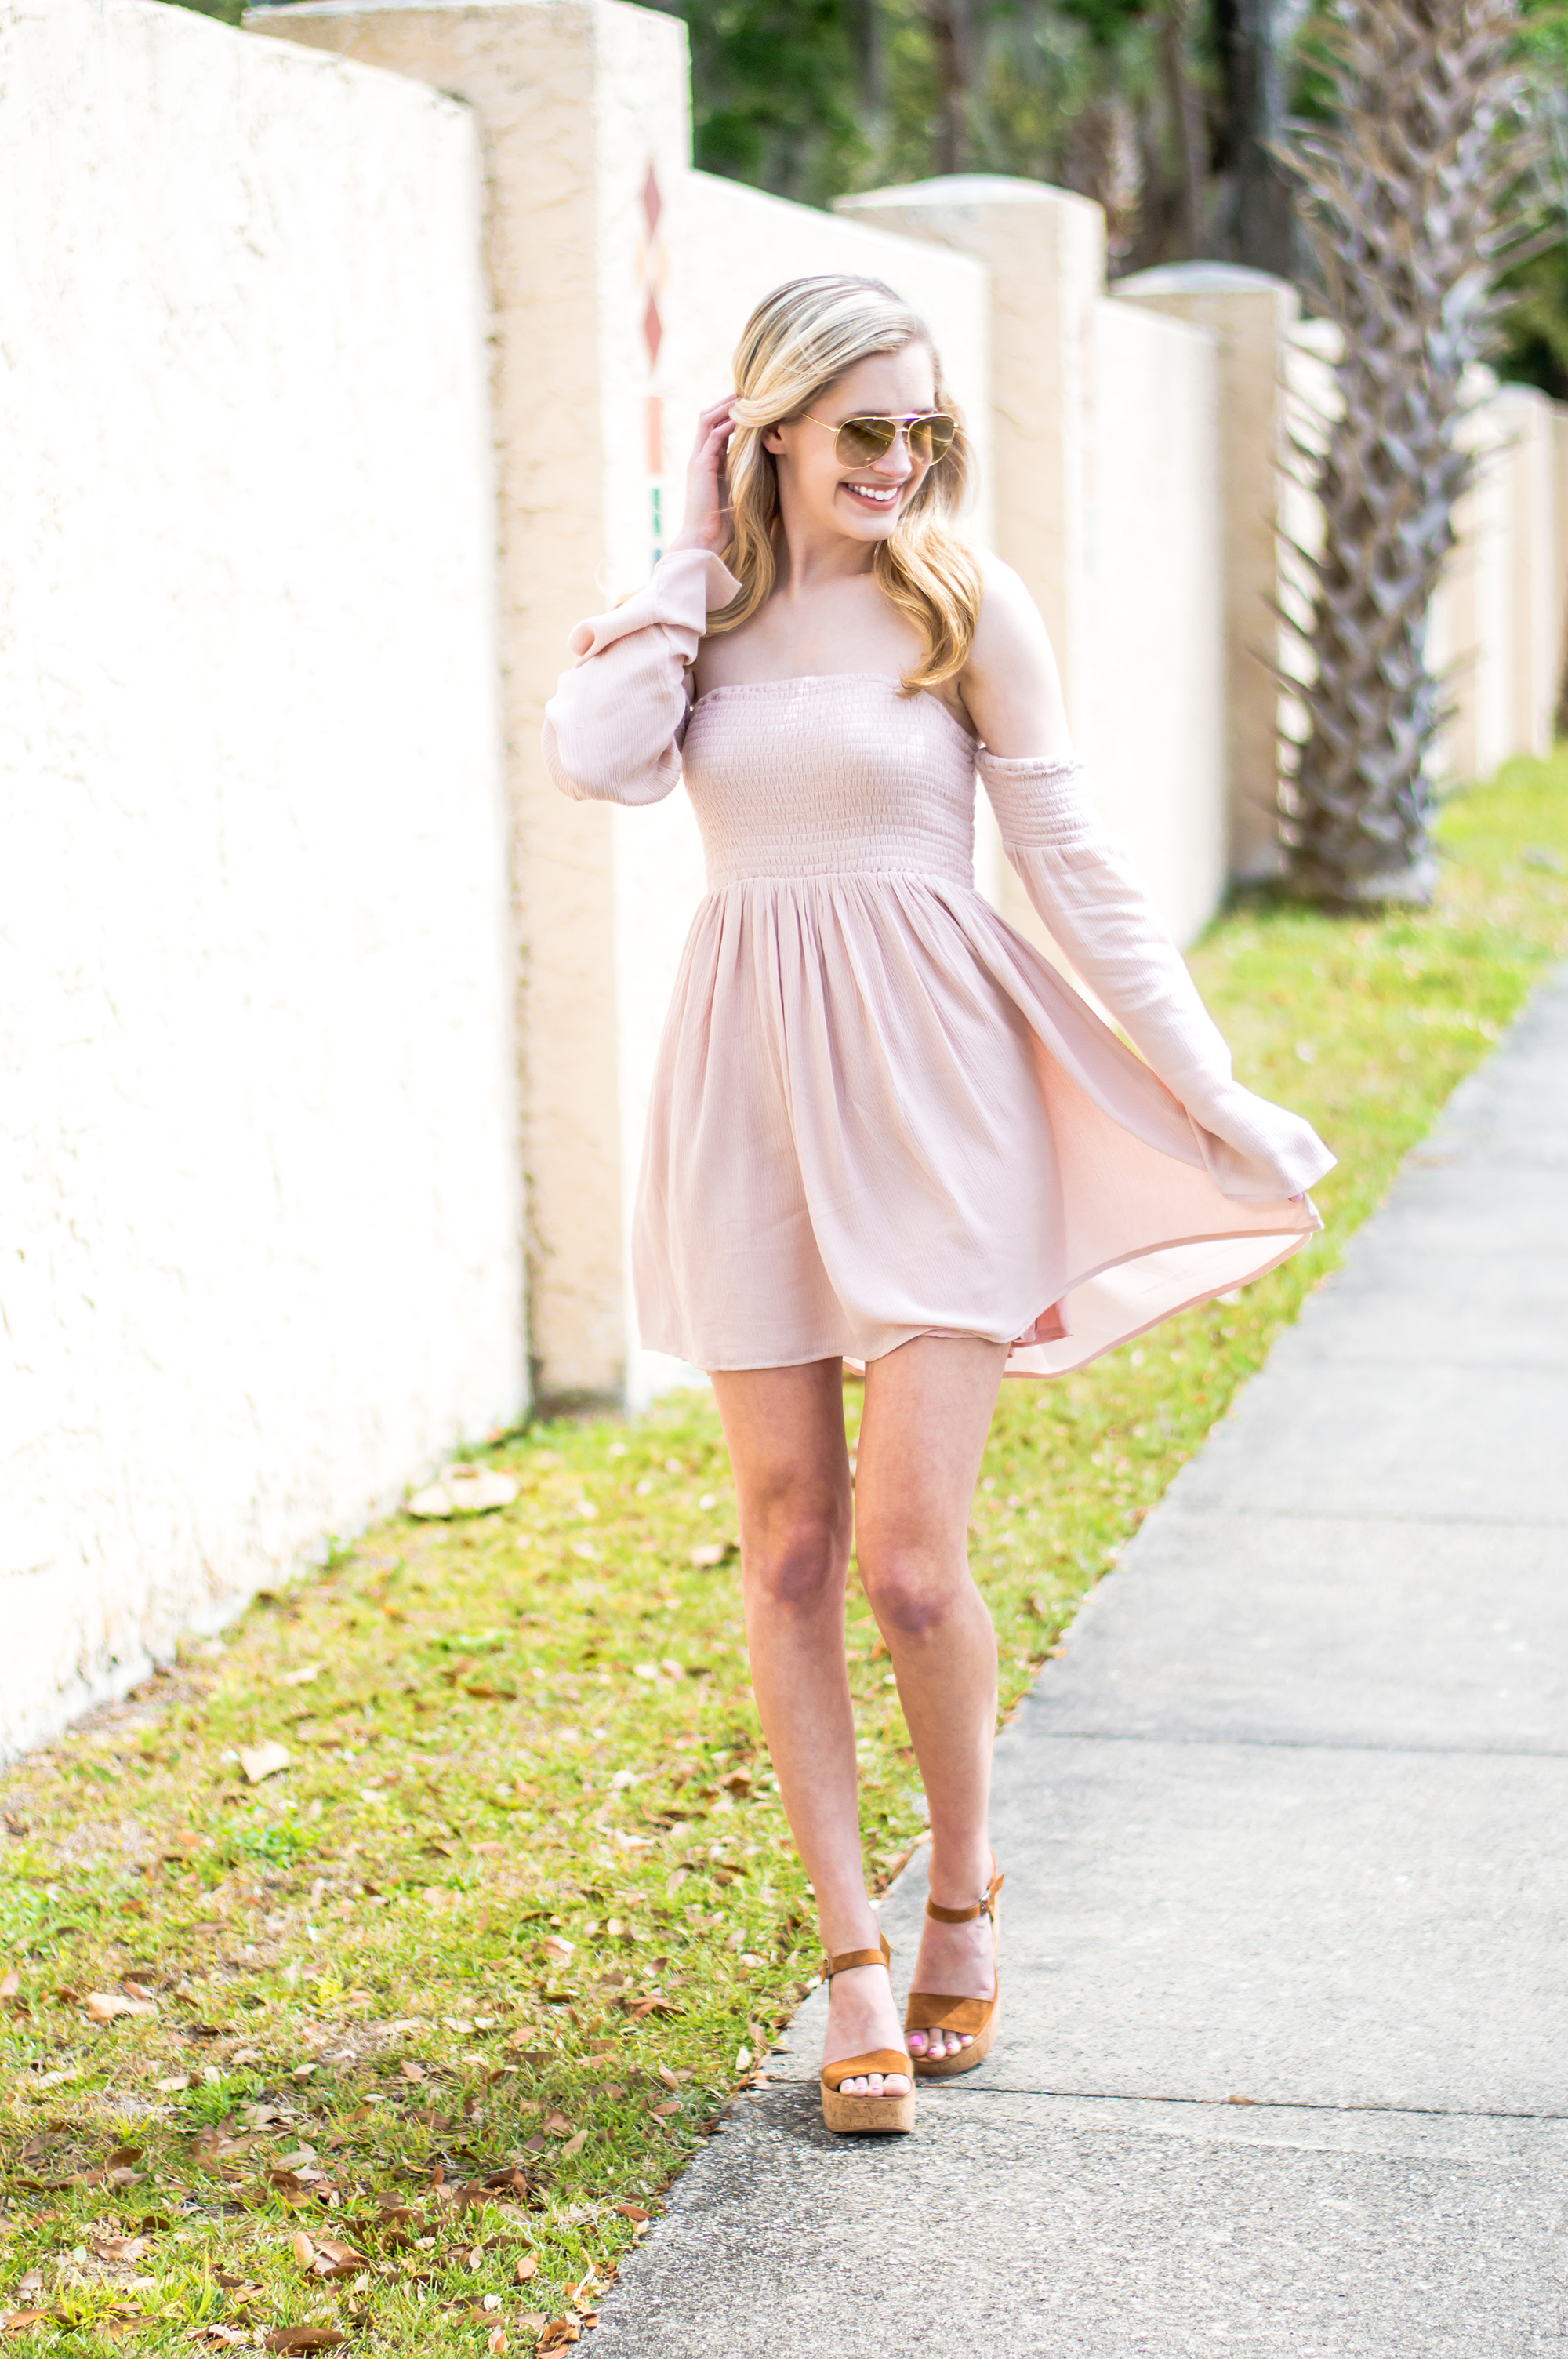 styelled-blog-elle-elisabeth-fashion-style-blogger-florida-tobi-clothing-sundress-blush-dress-burberry-sunglasses-aviator-dolce-vita-02